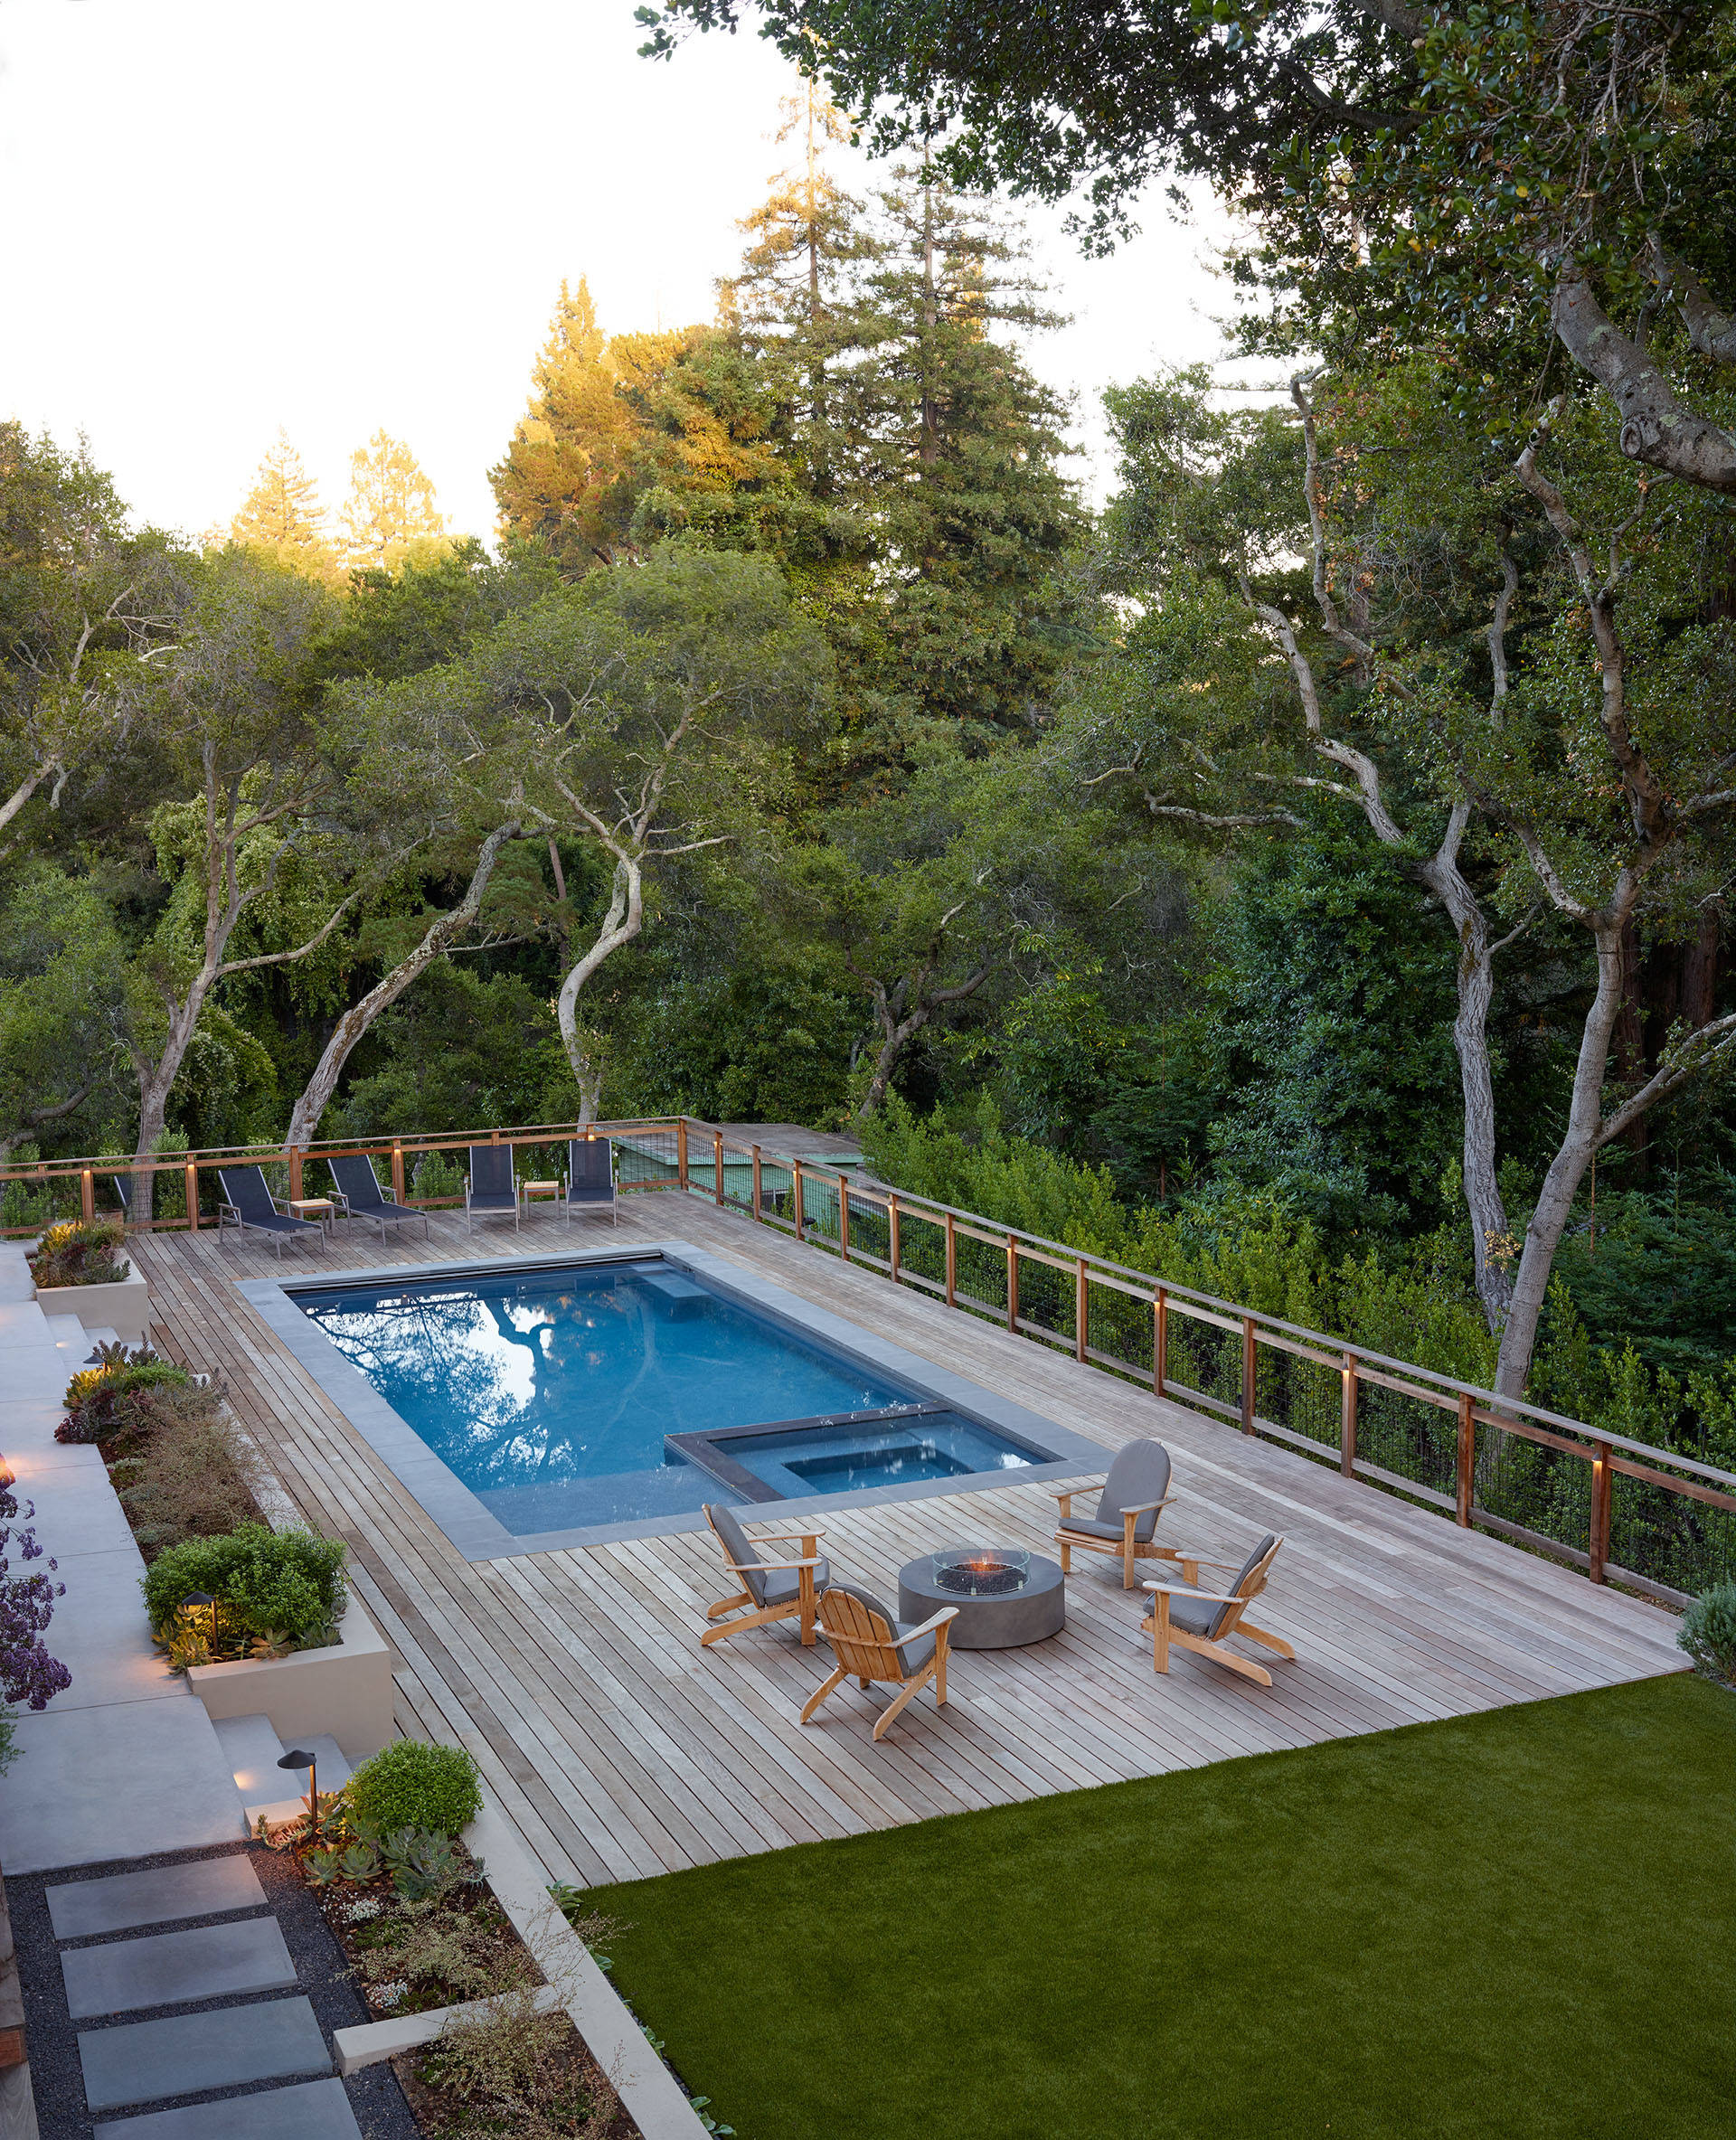 75 Beautiful Modern Pool Pictures Ideas March 2021 Houzz